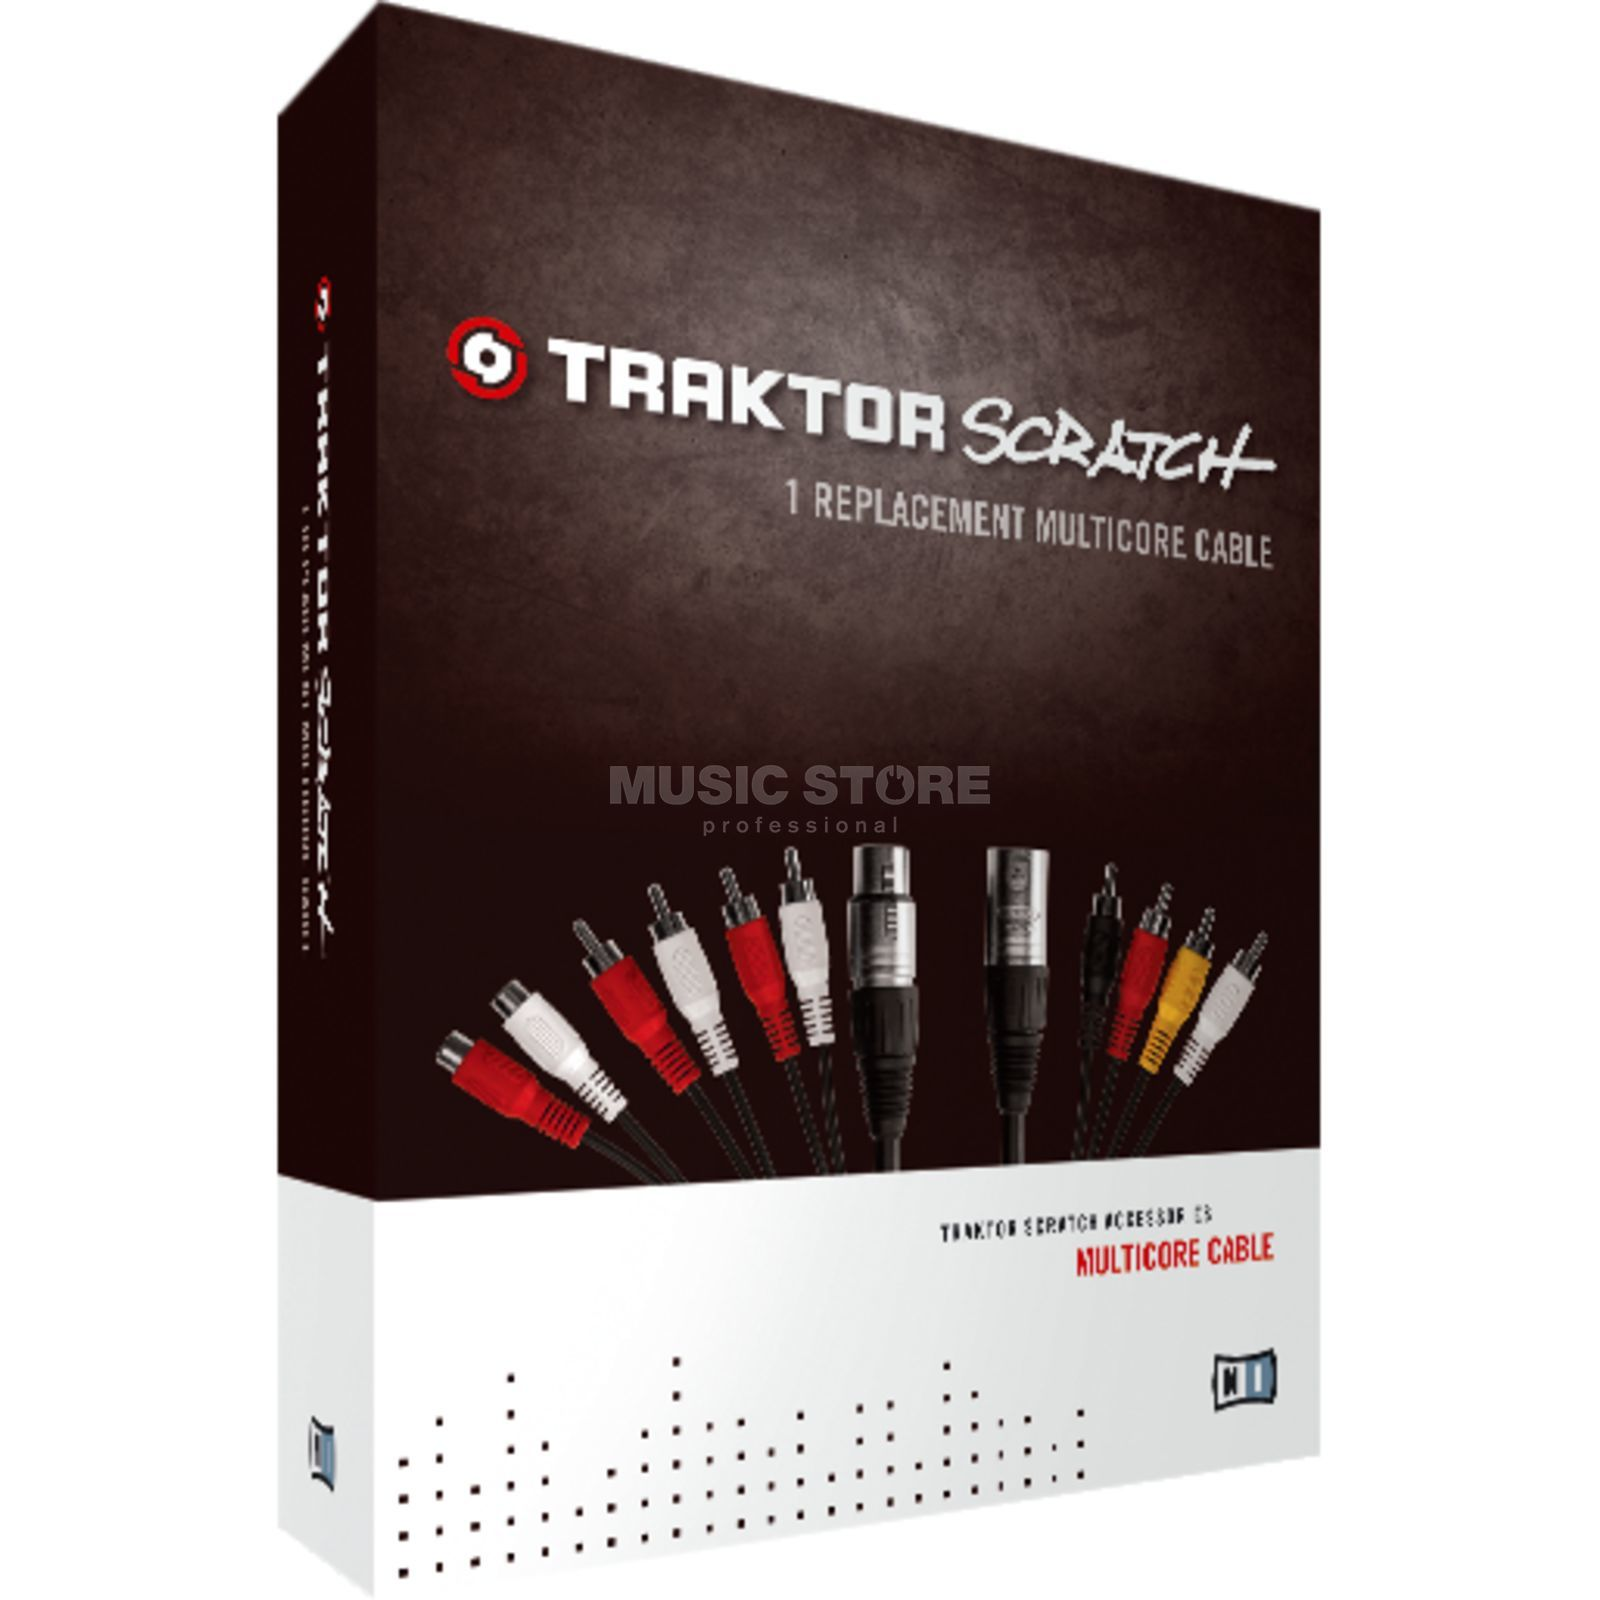 Native Instruments Traktor Scratch Multicabo 1x Replacement Set Cable Imagem do produto